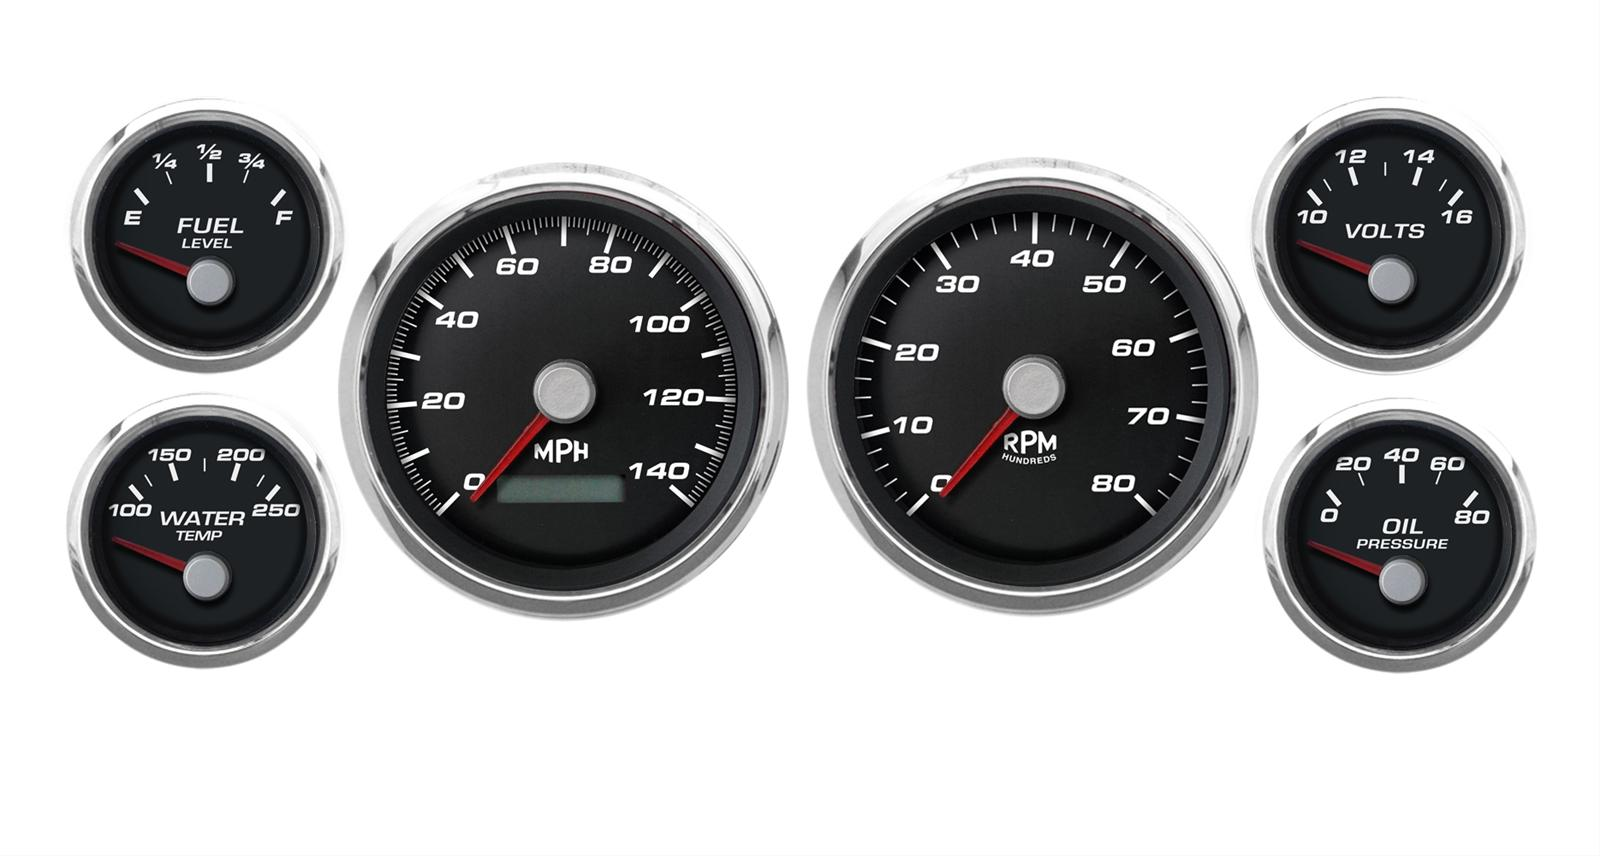 Cal Custom Performance Series Analog Gauge Kits 220261401 Wiring A Fuel In Jeep Free Shipping On Orders Over 99 At Summit Racing